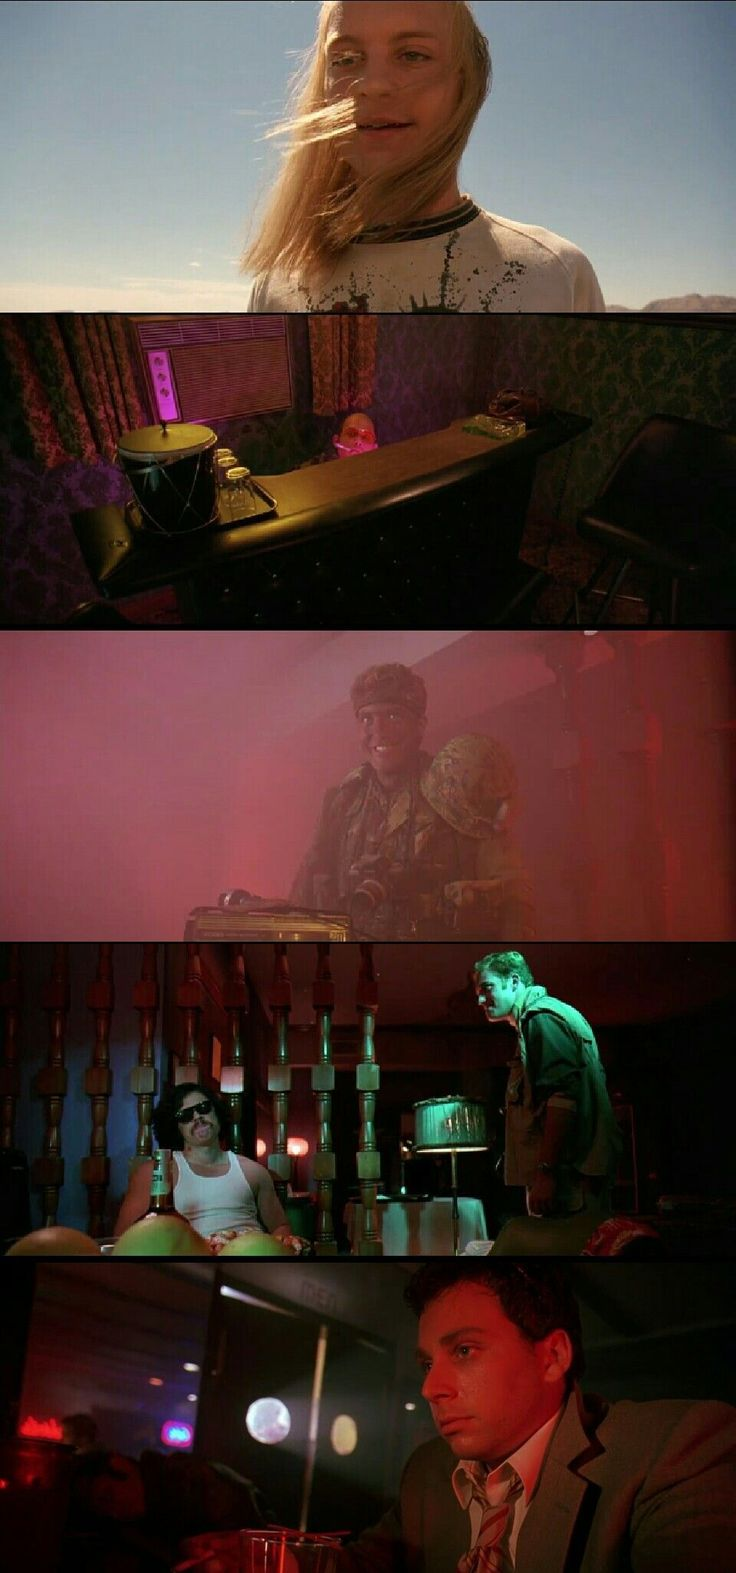 Fear and Loathing in Las Vegas (1998) Directed by Terry Gilliam. Cinematography by Nicola Pecorini #FilmmakingTricks